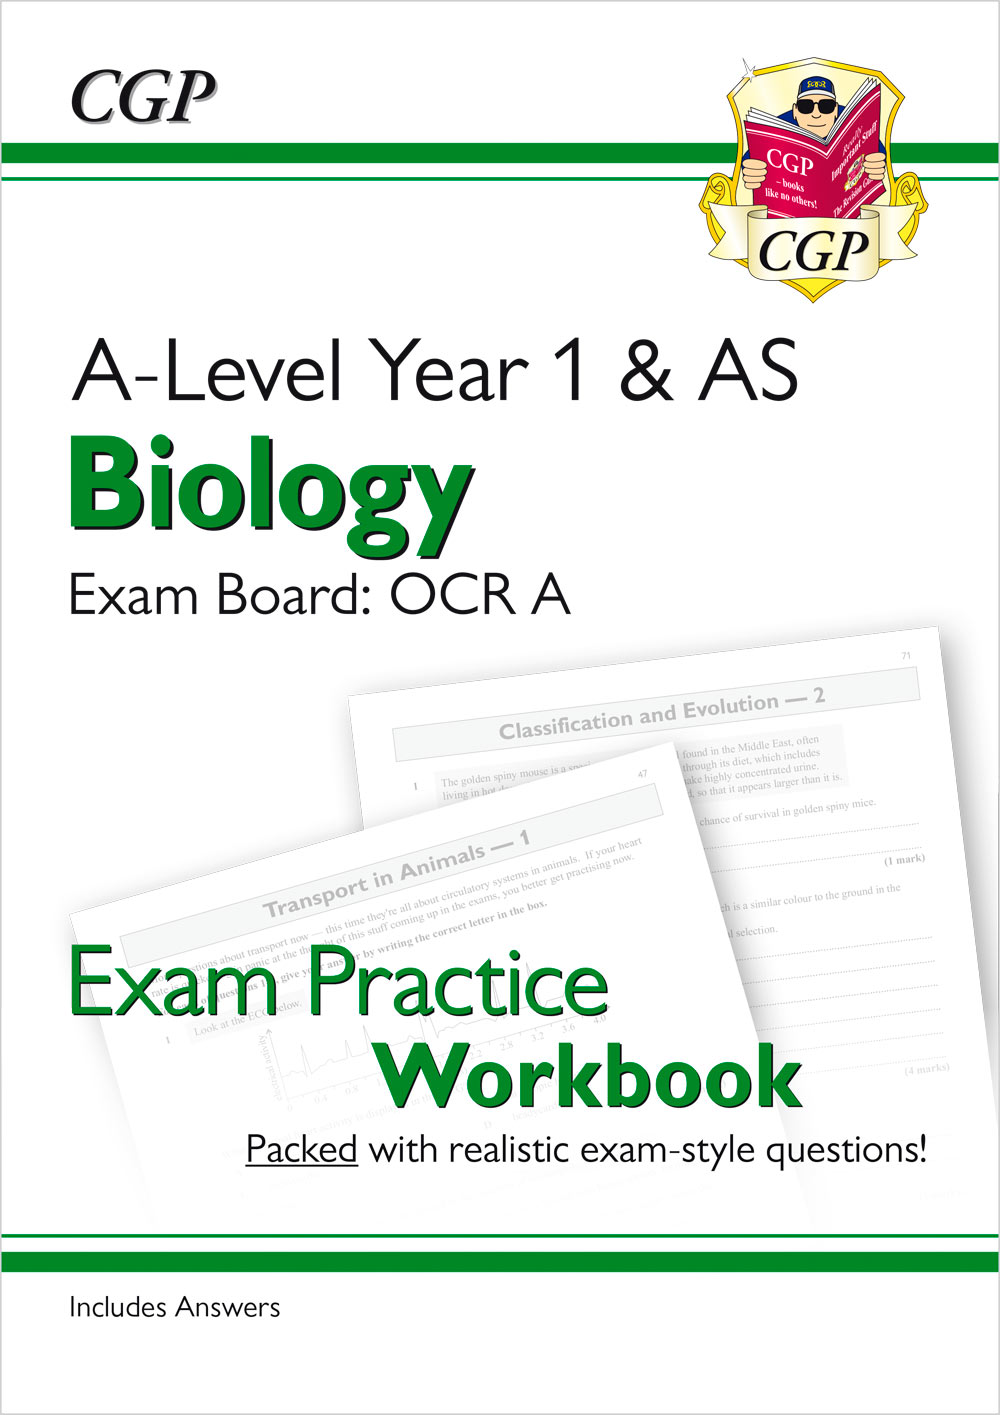 BRAQ51 - A-Level Biology: OCR A Year 1 & AS Exam Practice Workbook - includes Answers